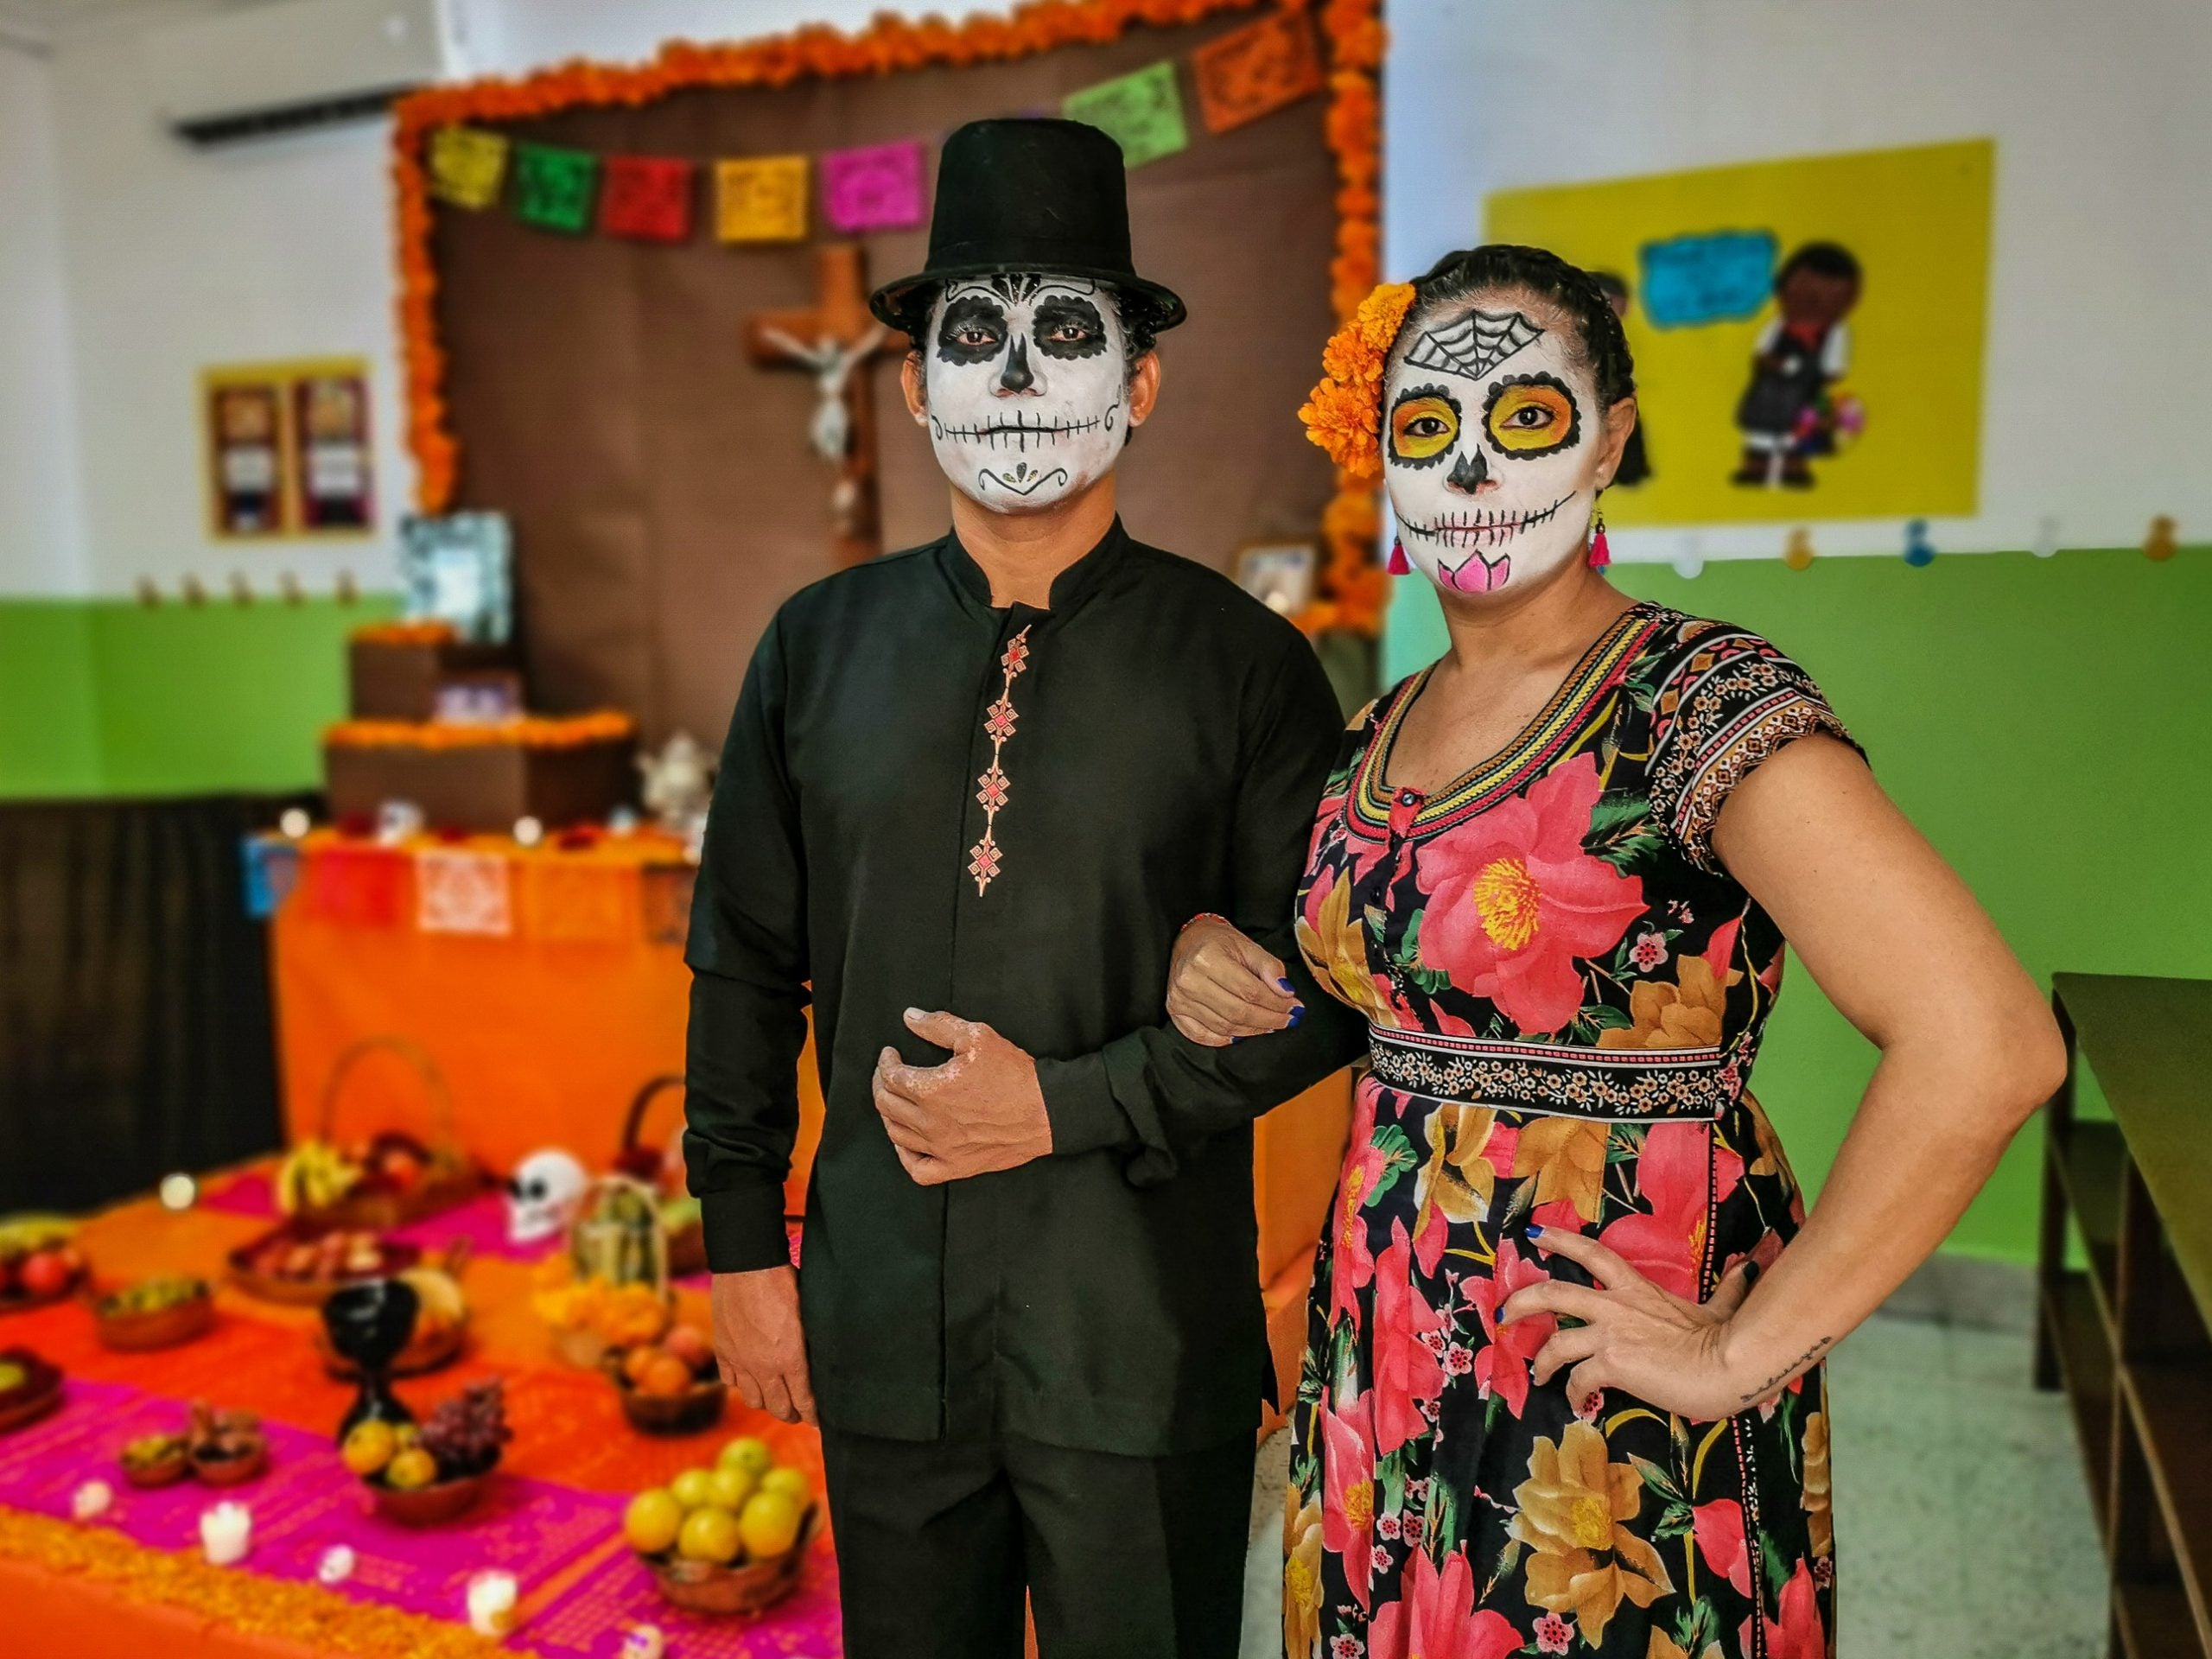 The Story Behind The Day of The Dead